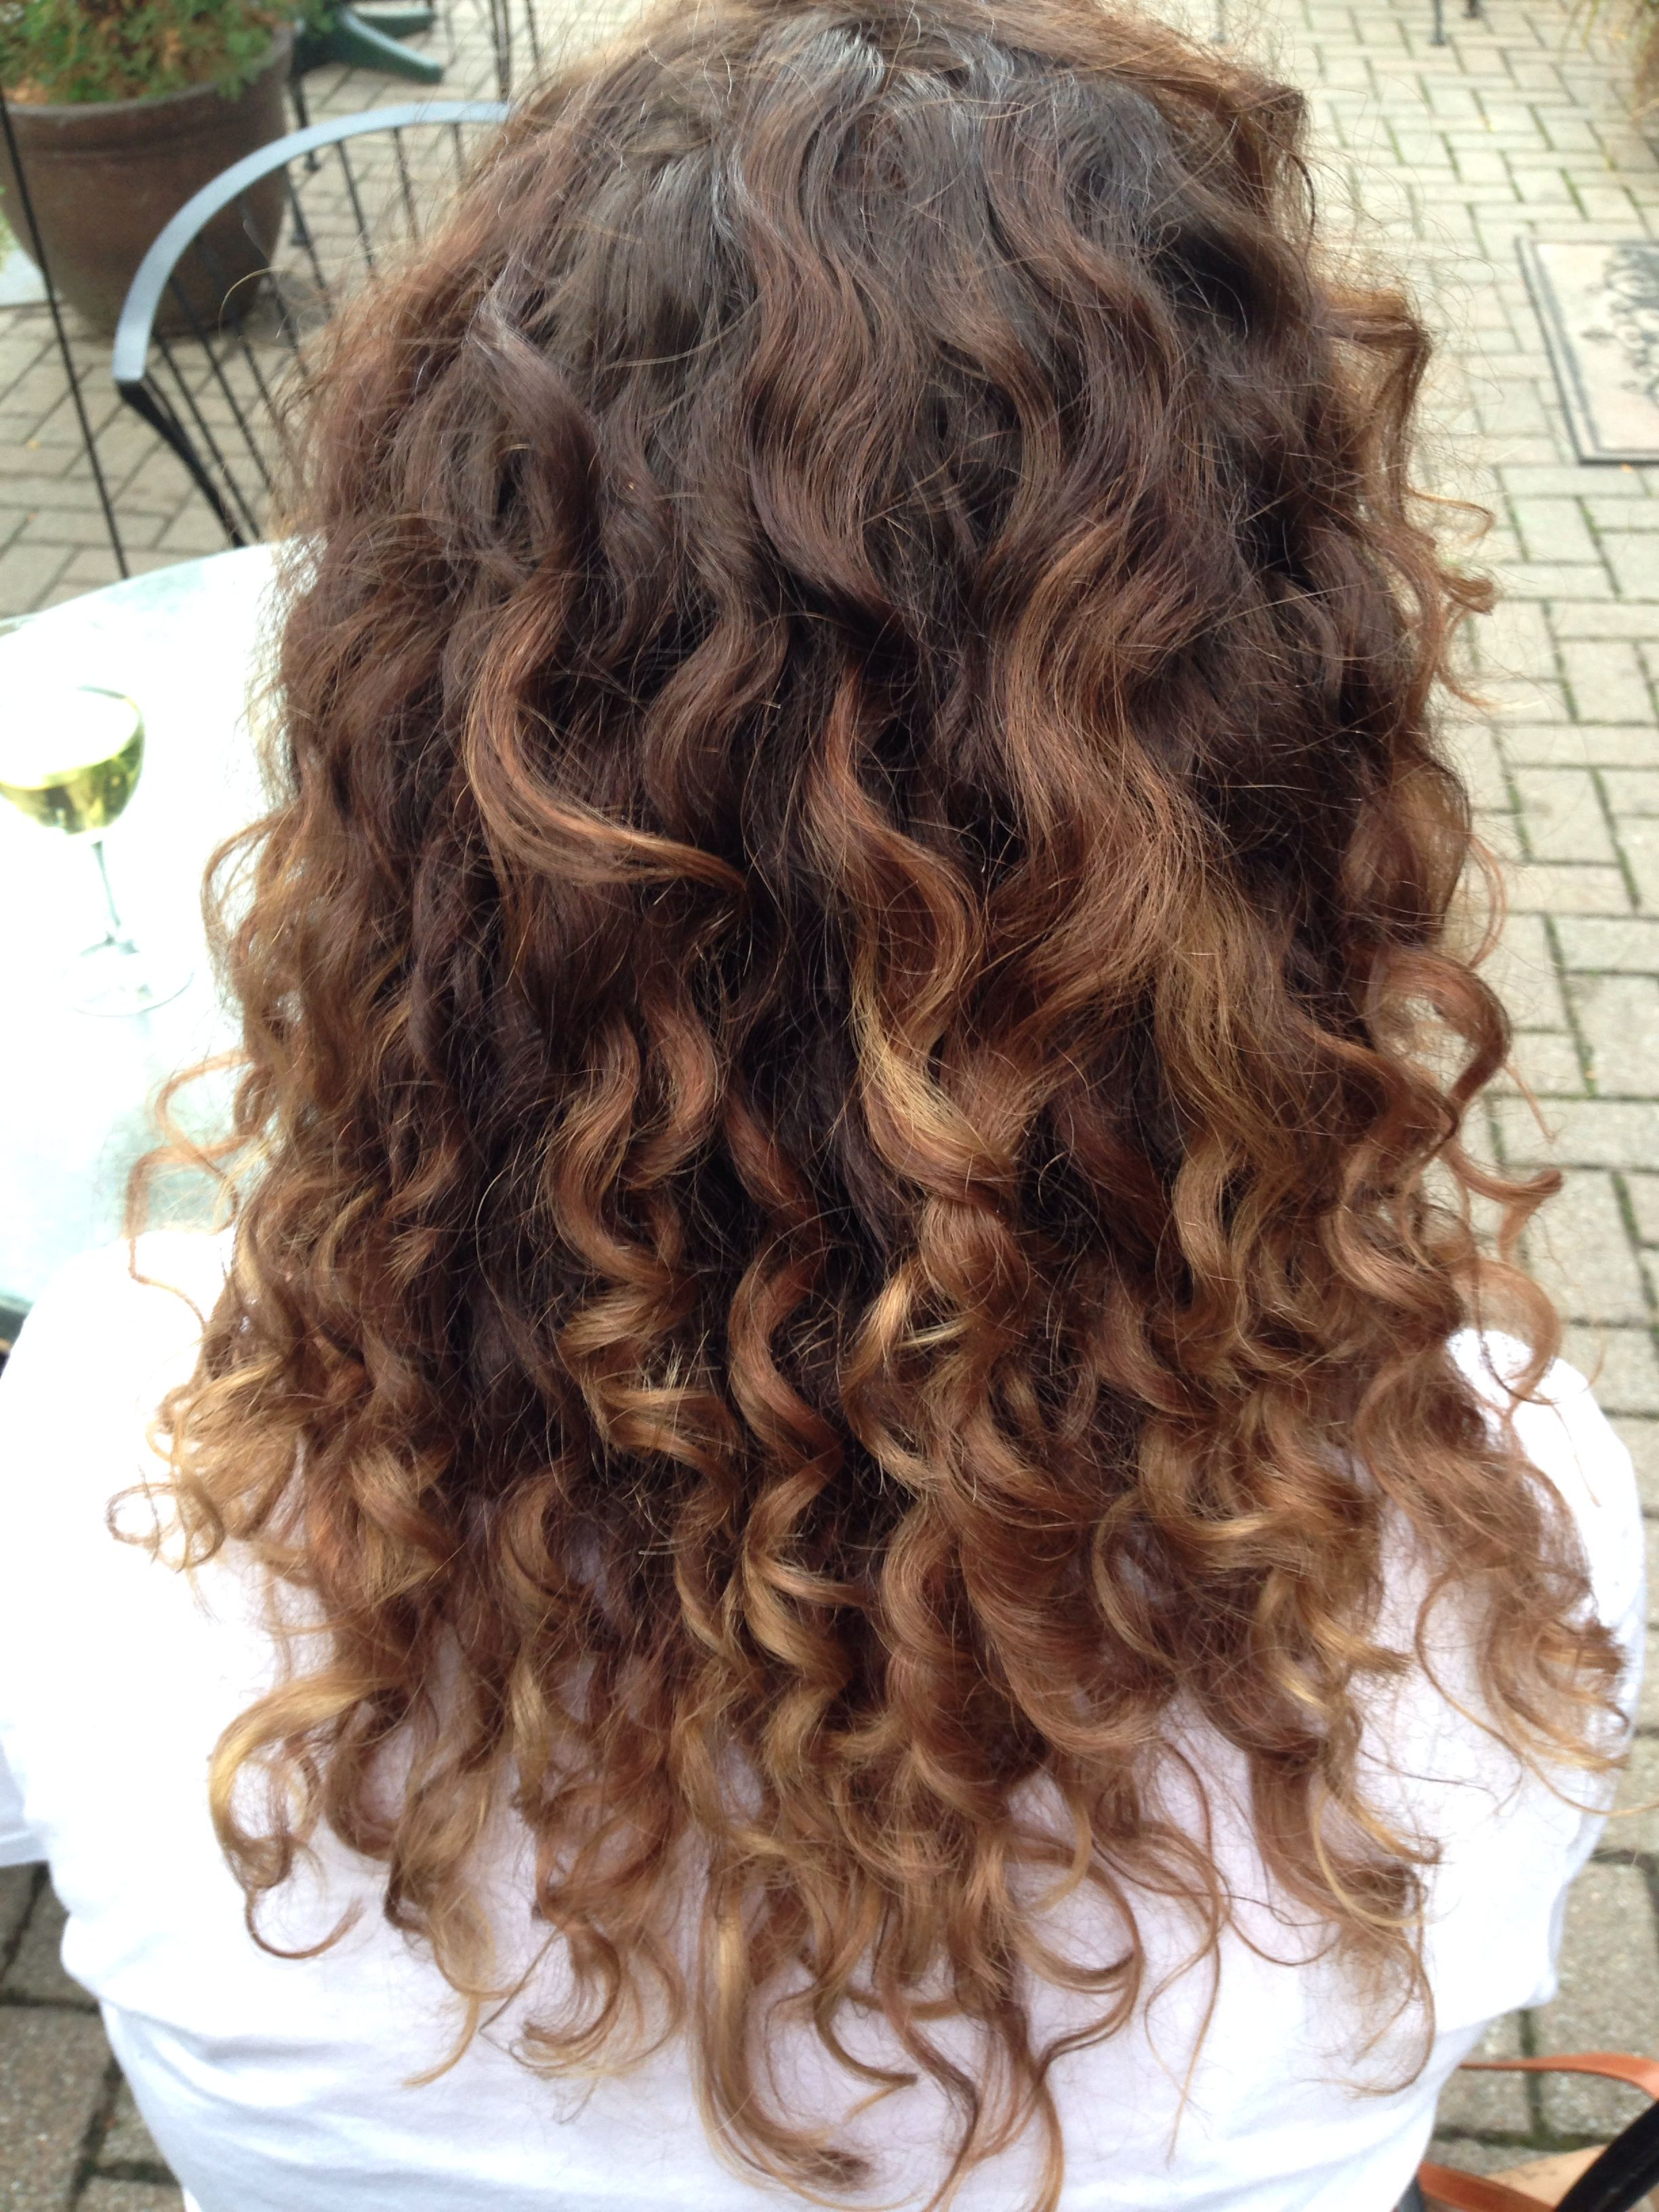 Naturally curly hair Carmel ombré by the best in the